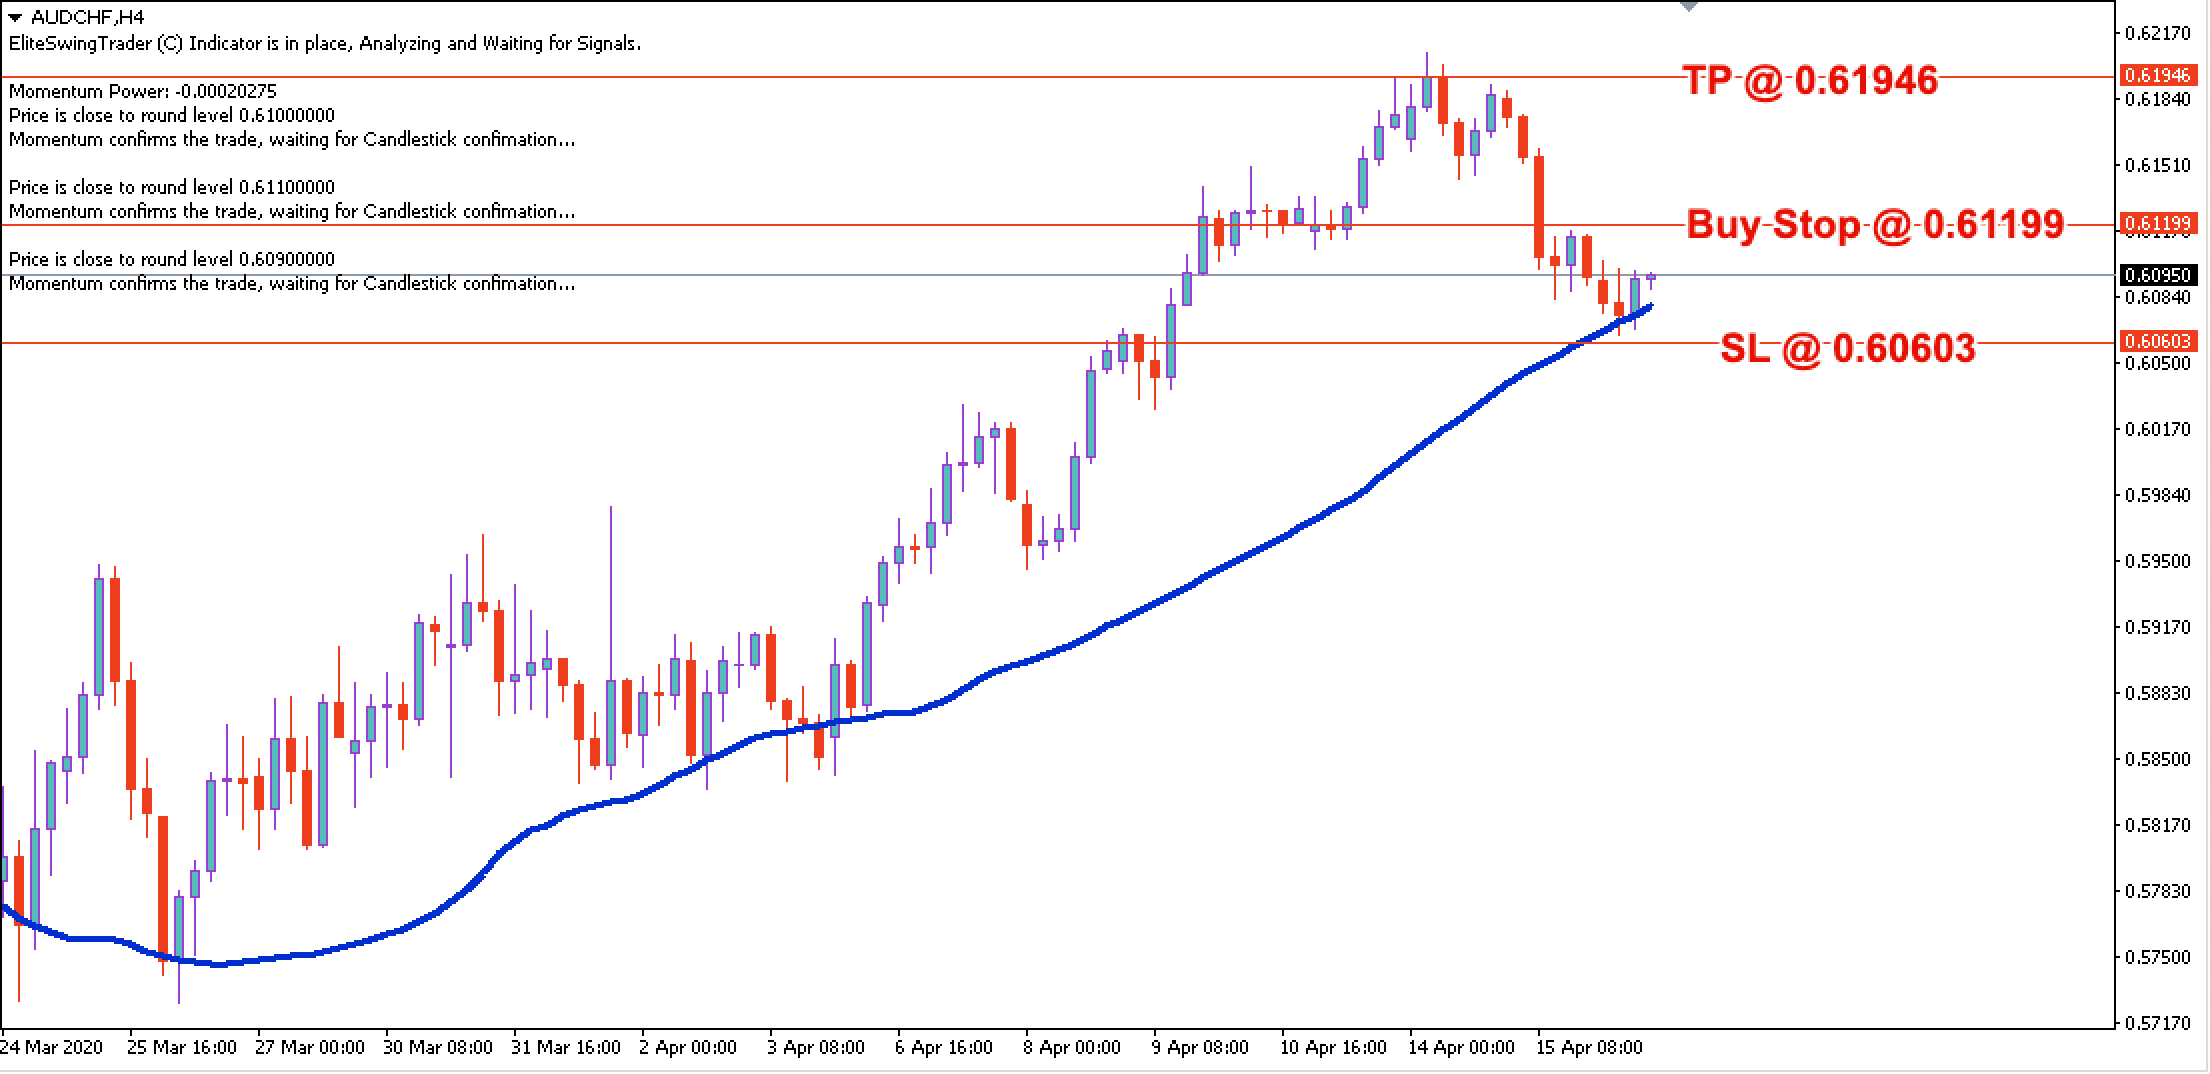 AUD/CHF Forex Trendy Scanner Signal – 16th April 2020